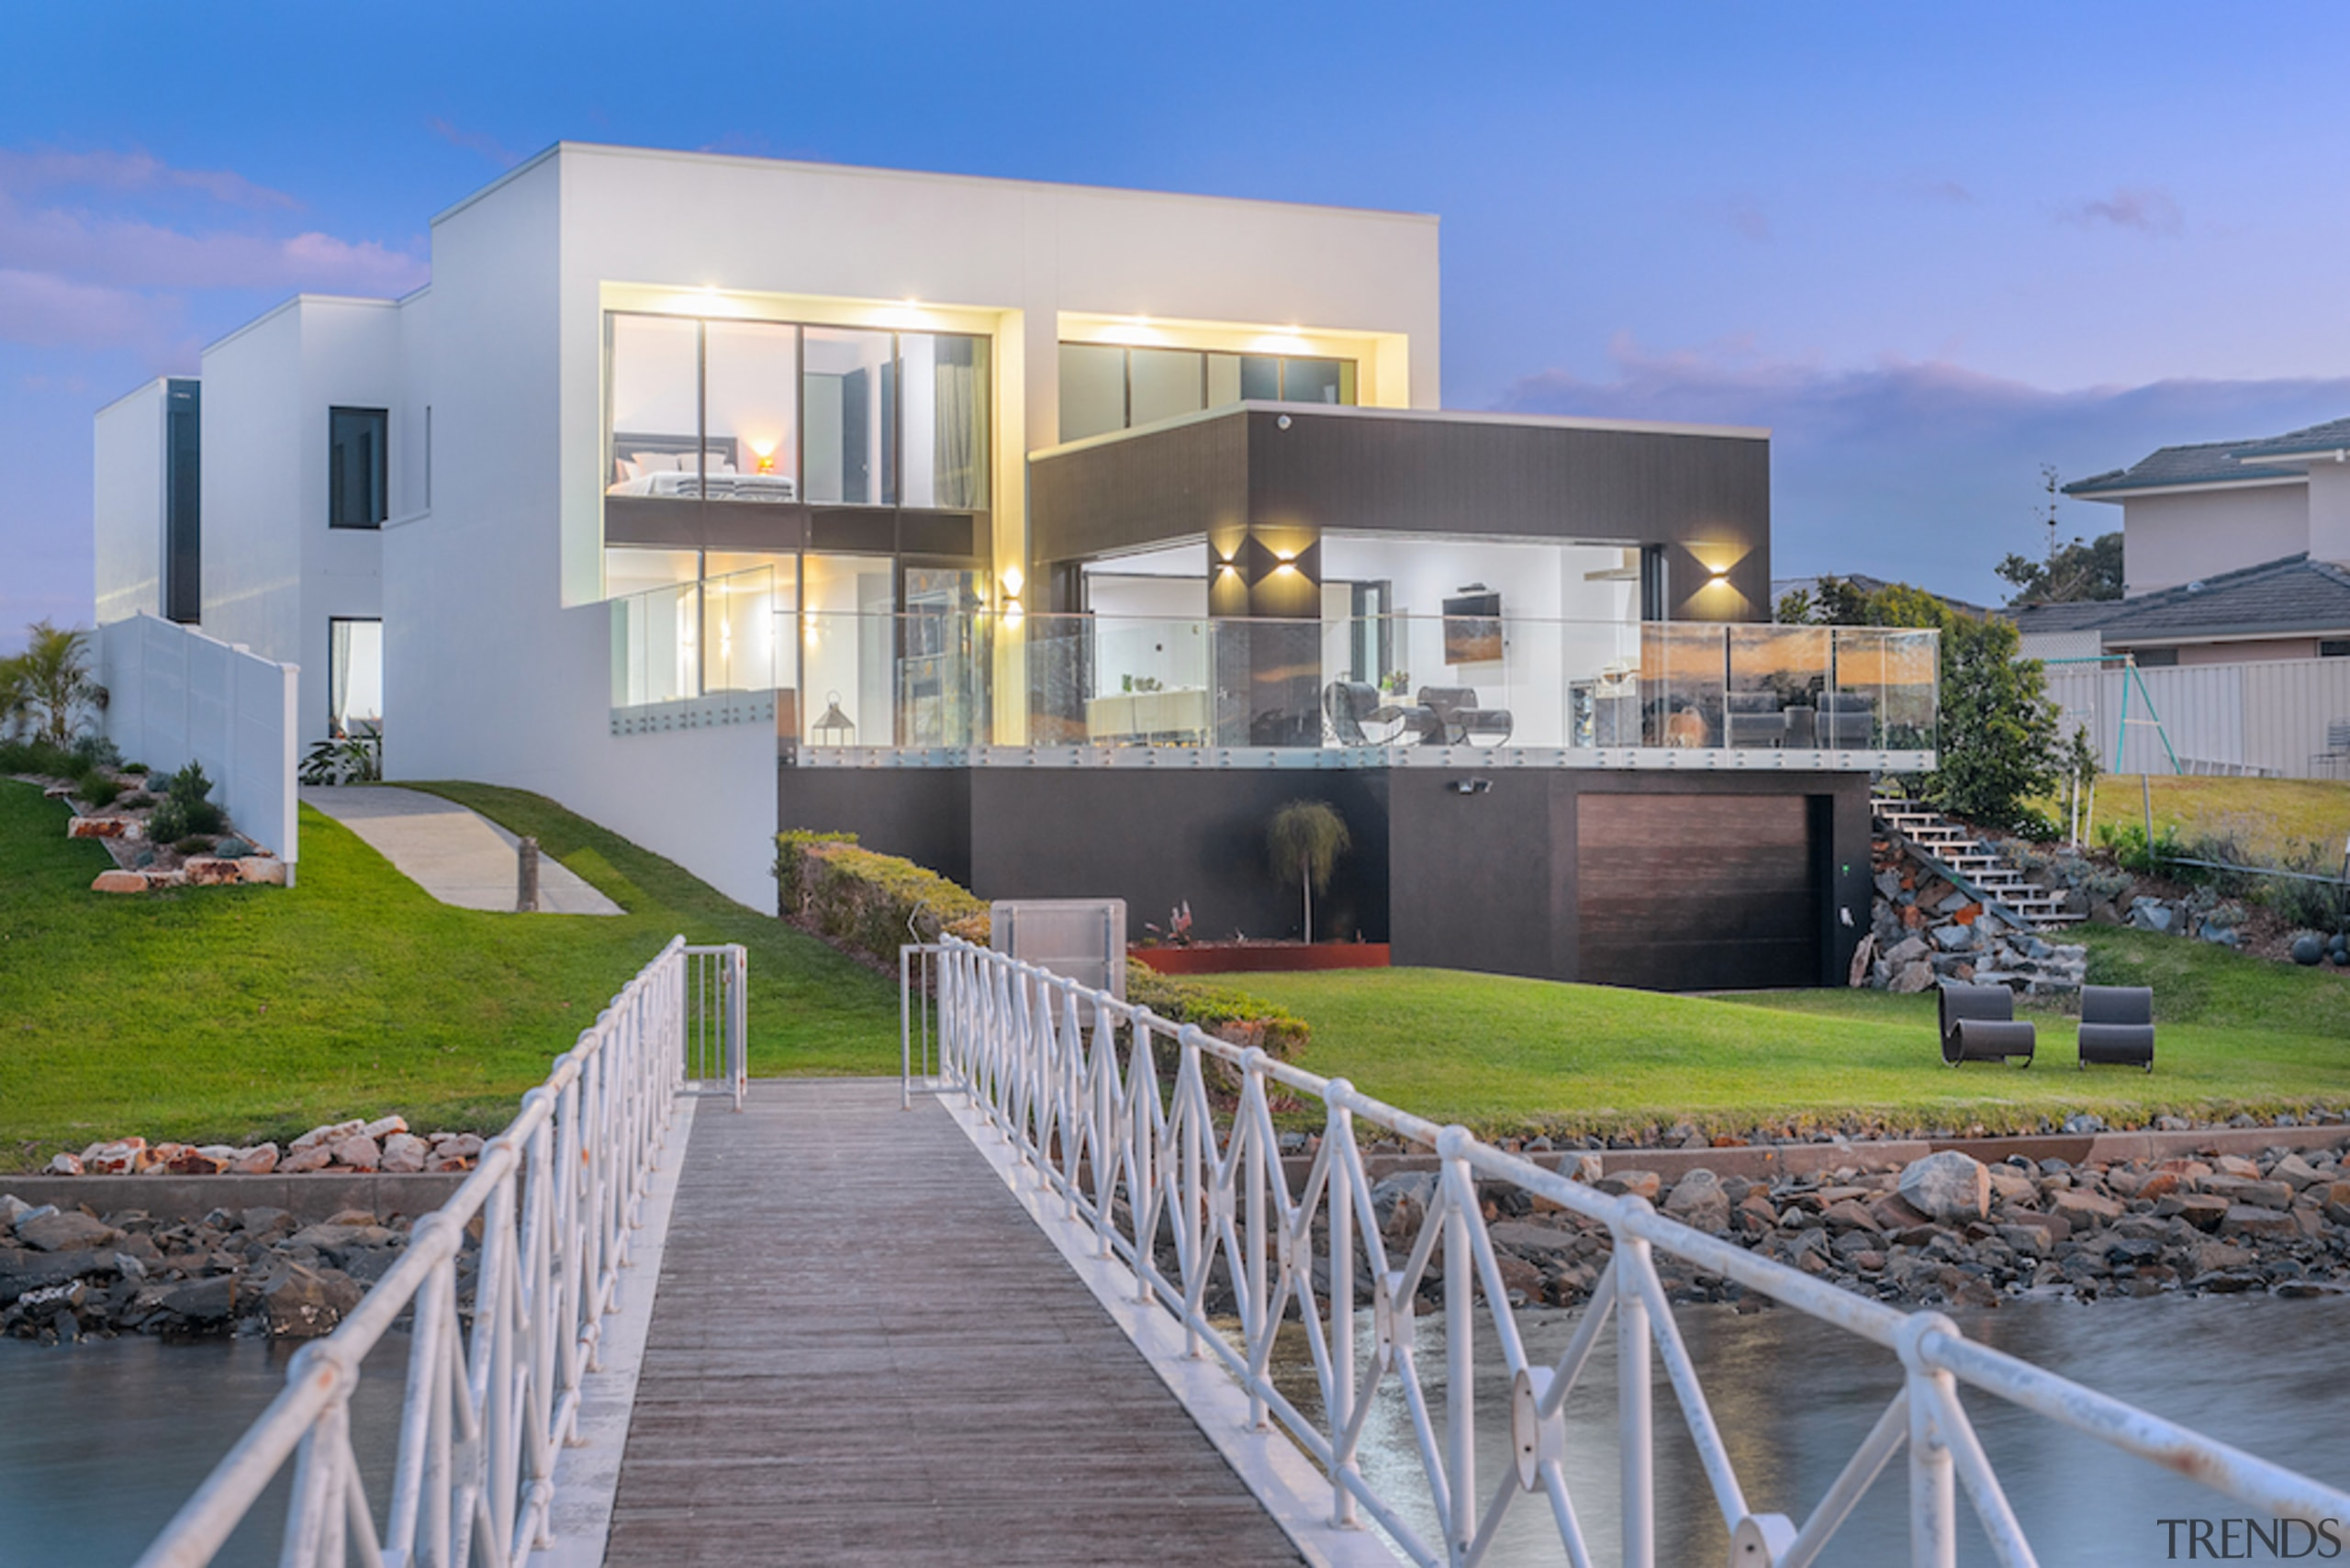 The expanded back of the home meets the apartment, architecture, building, design, estate, facade, home, house, interior design, mixed-use, property, real estate, residential area, room, sky, urban design, villa, gray